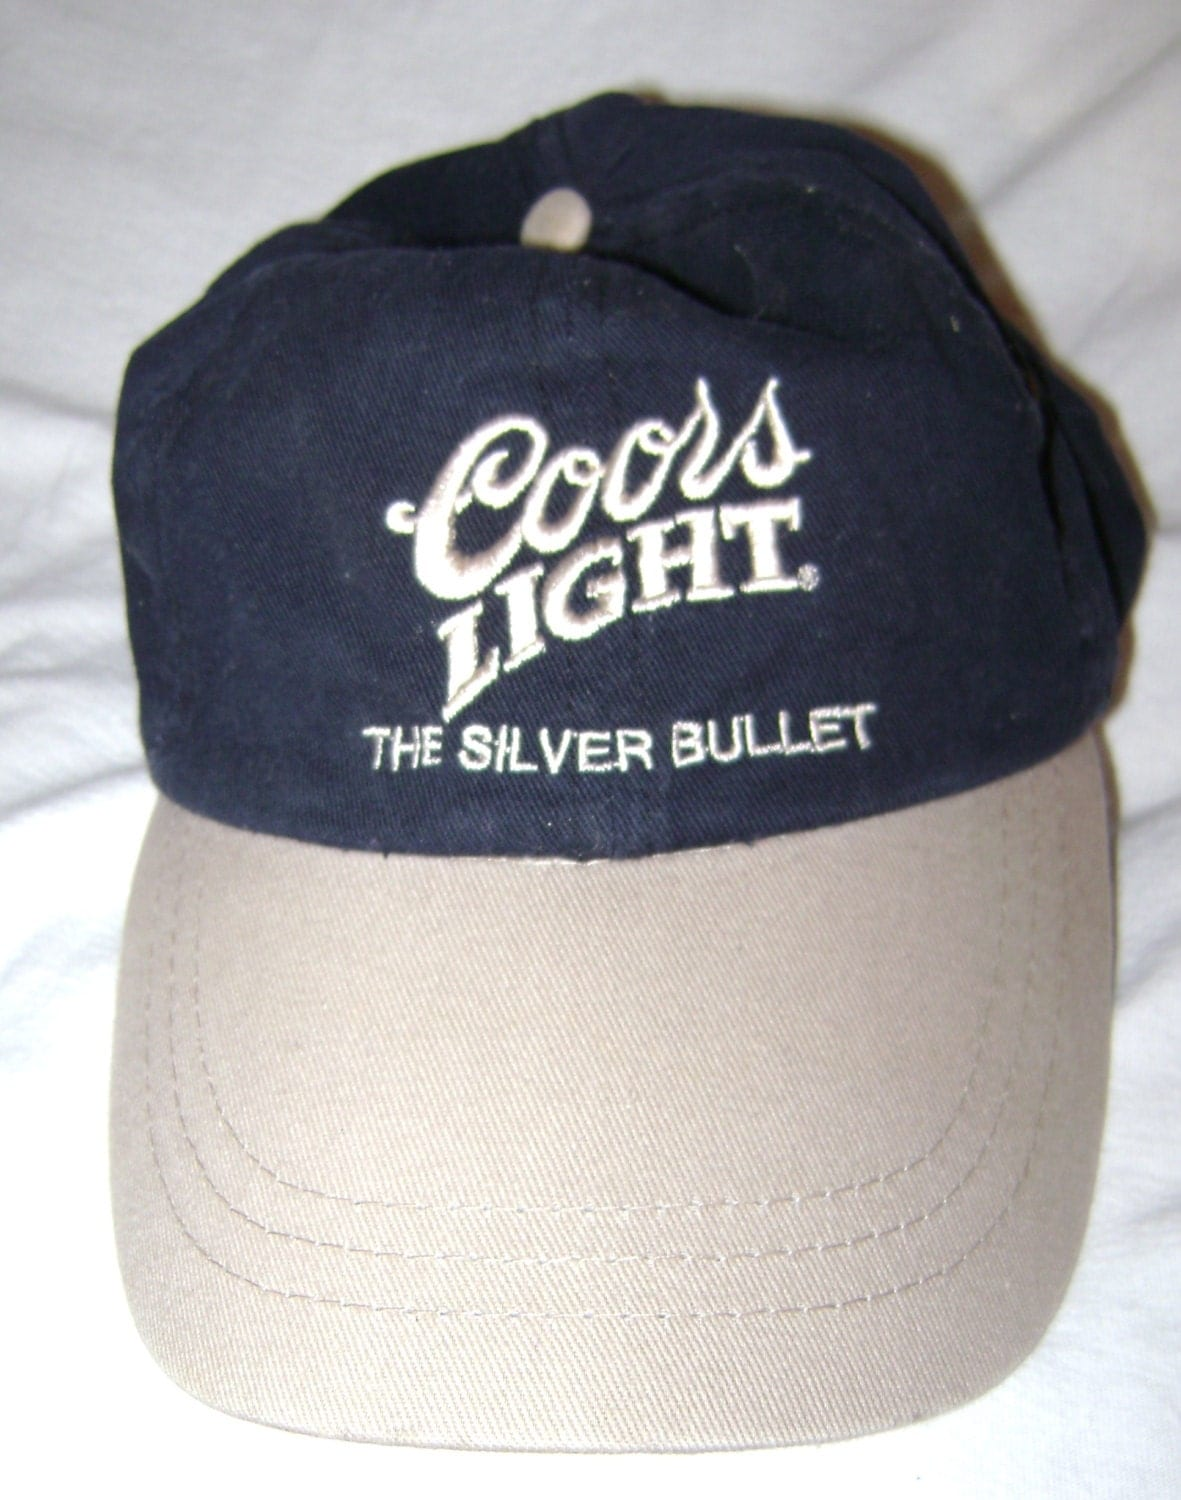 coors light the silver bullet embroidered baseball cap hat